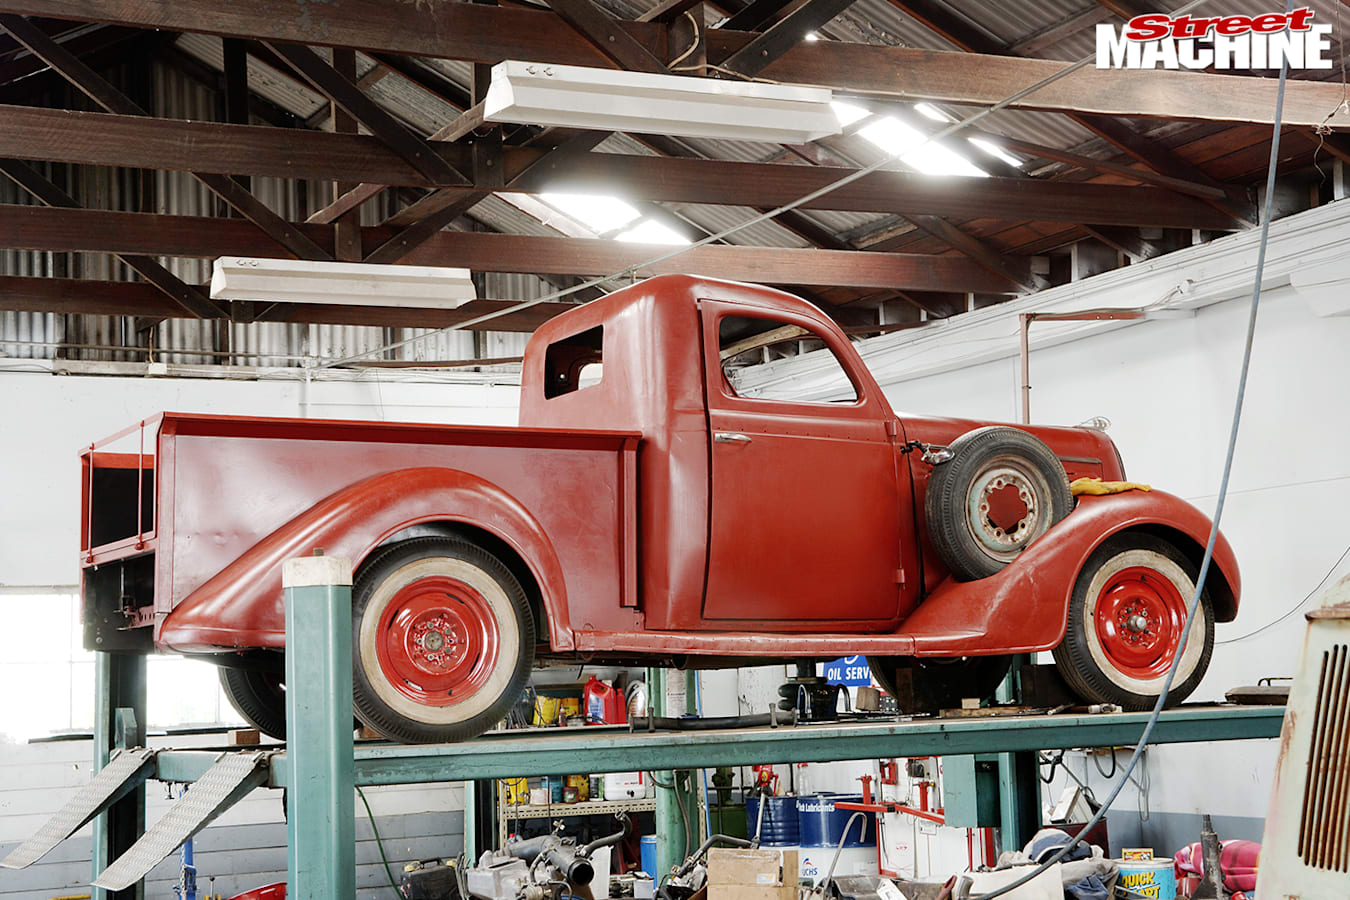 Street Machine Features Townsend Family Truck